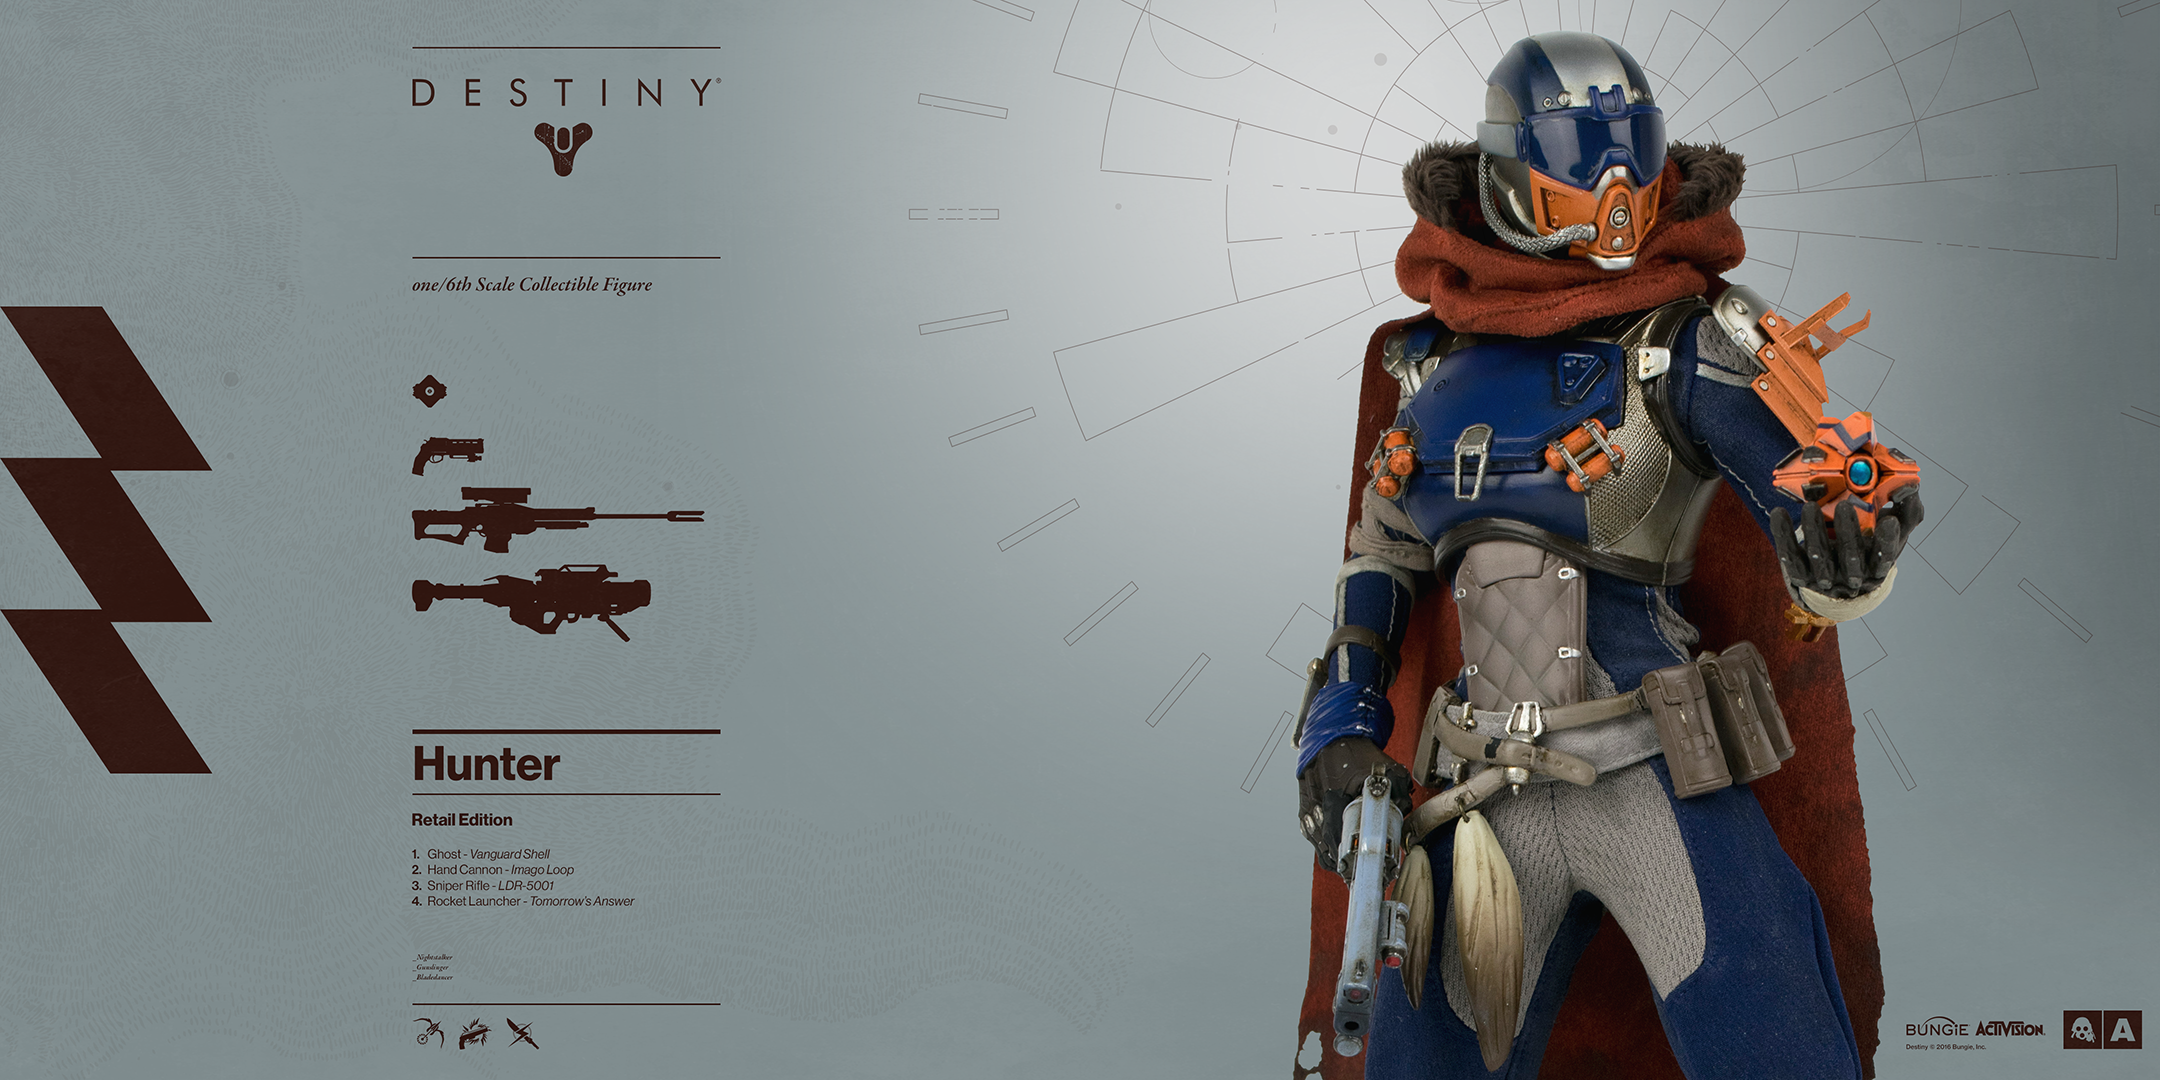 3A_Destiny_Hunter_RetailEdition_Landscape_Right_v002.png